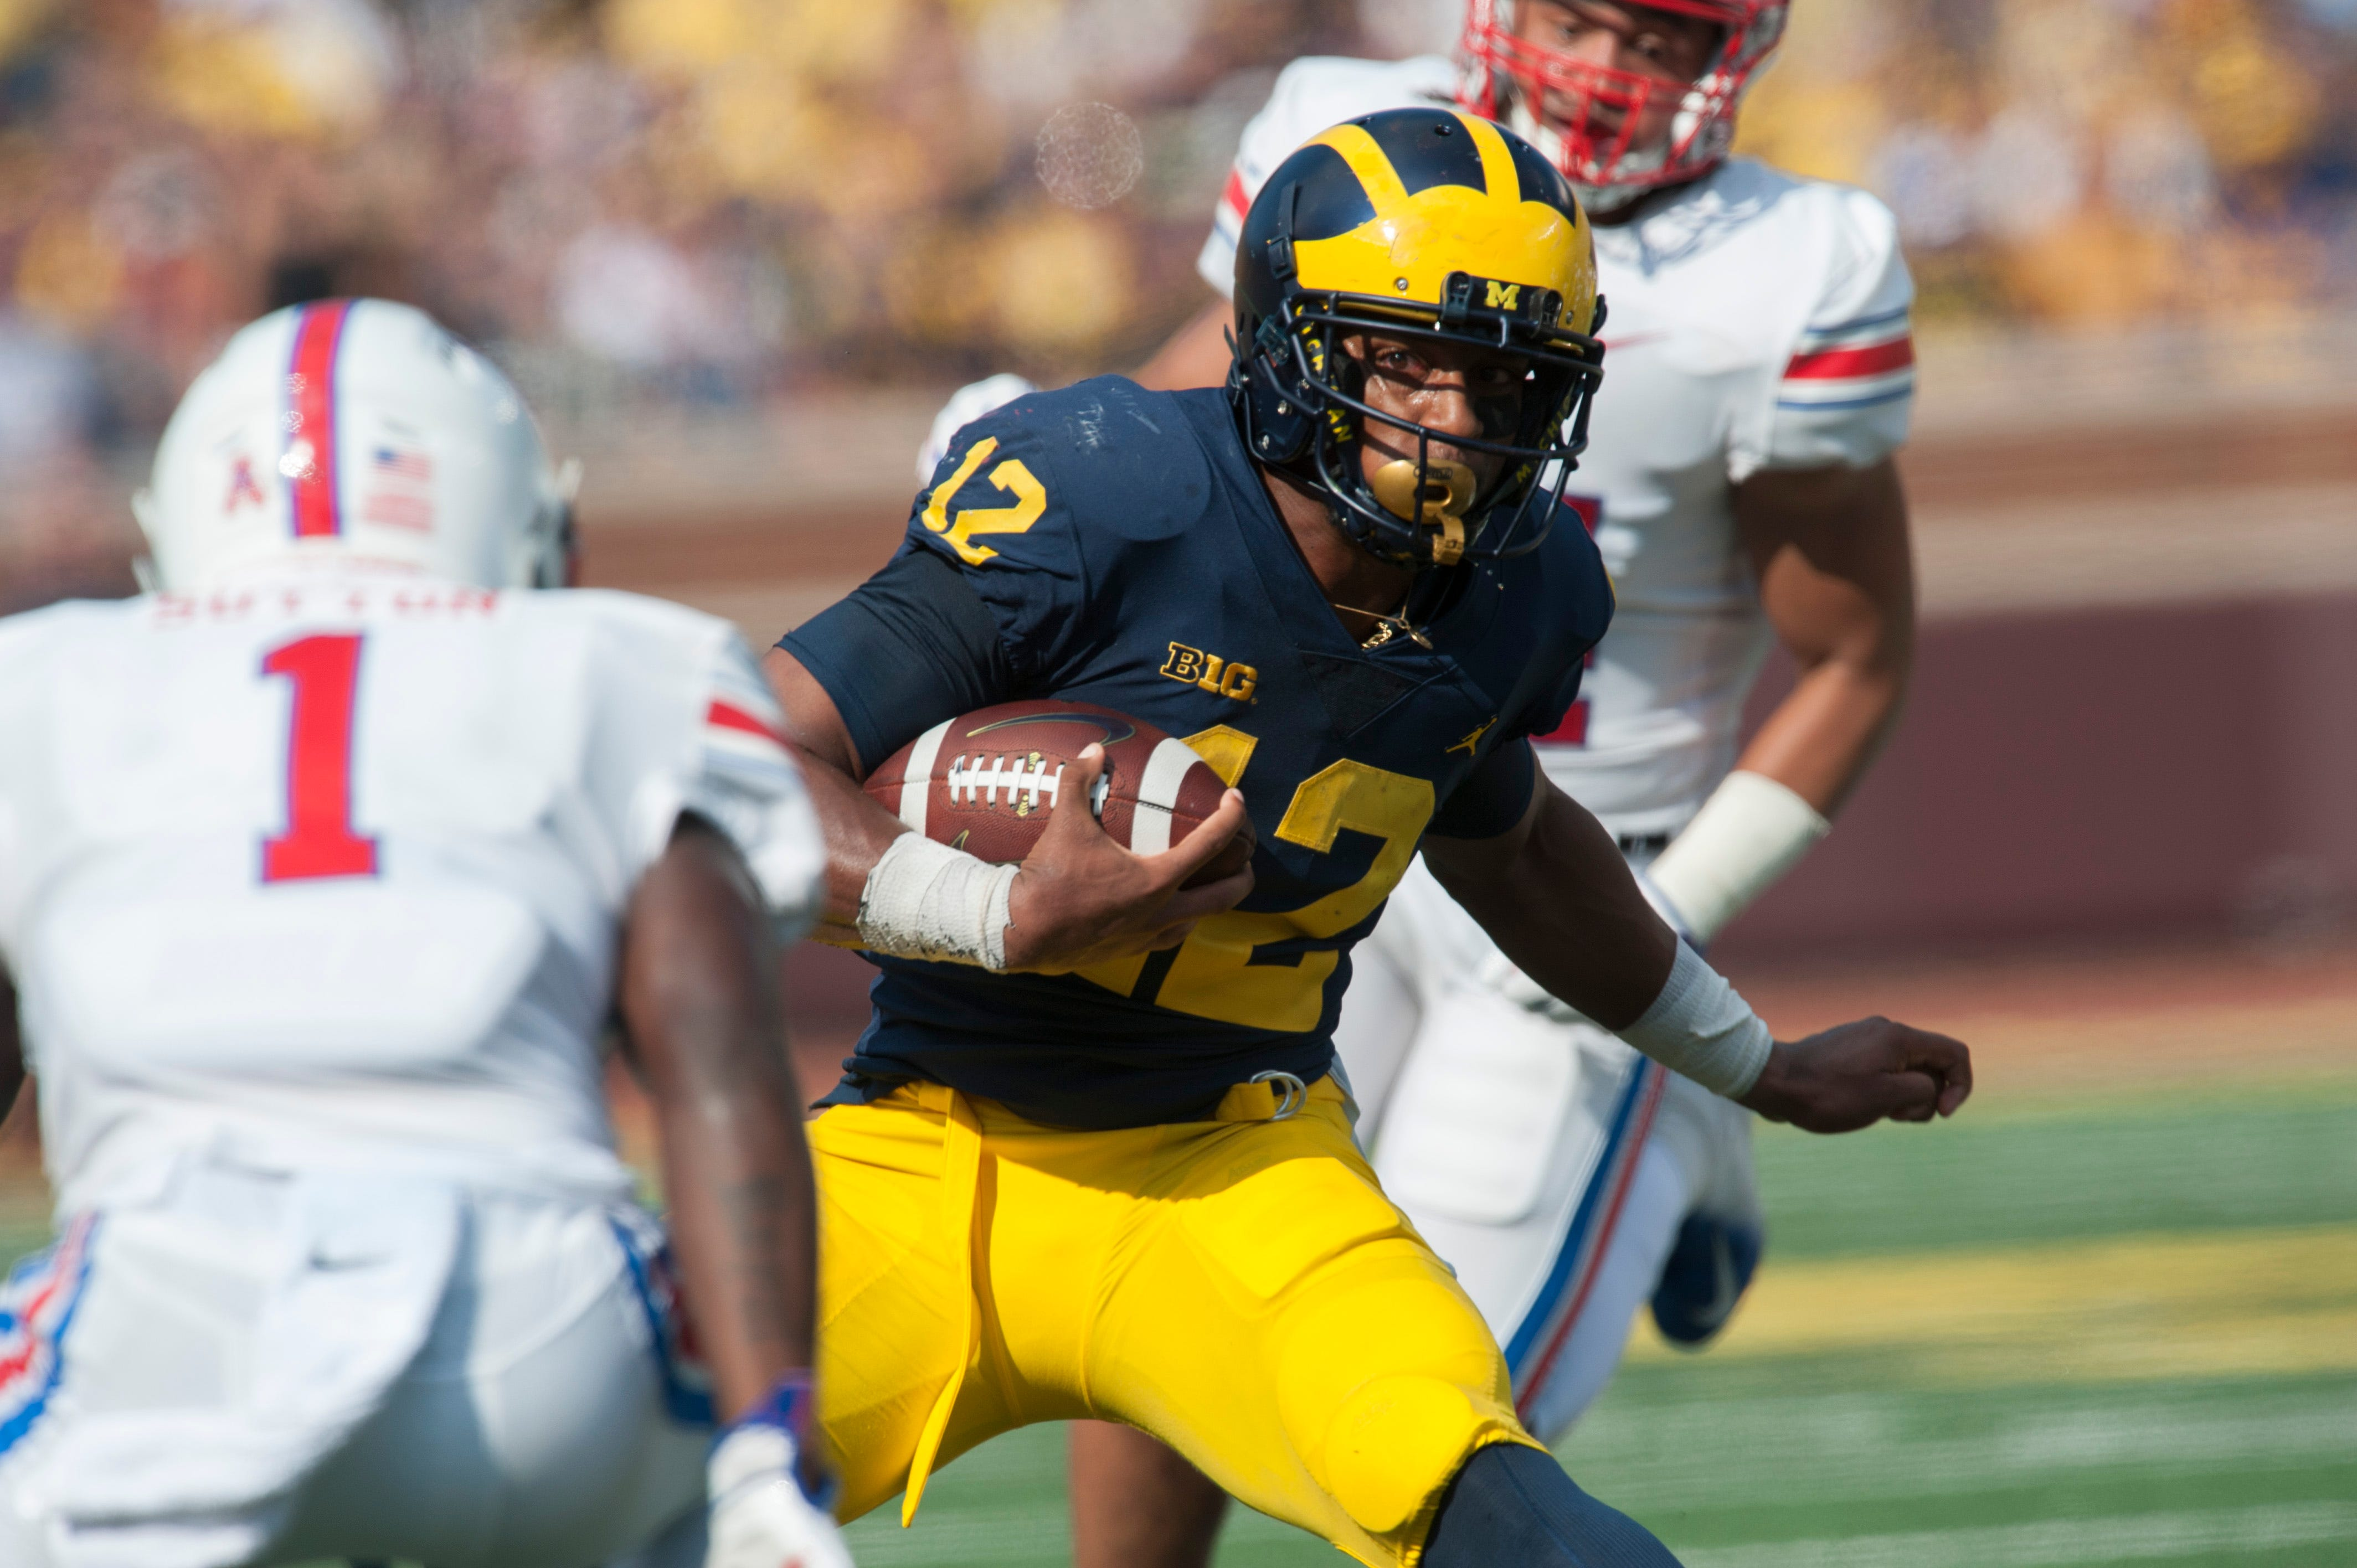 Running back Chris Evans will not play for Michigan Wolverines in 2019